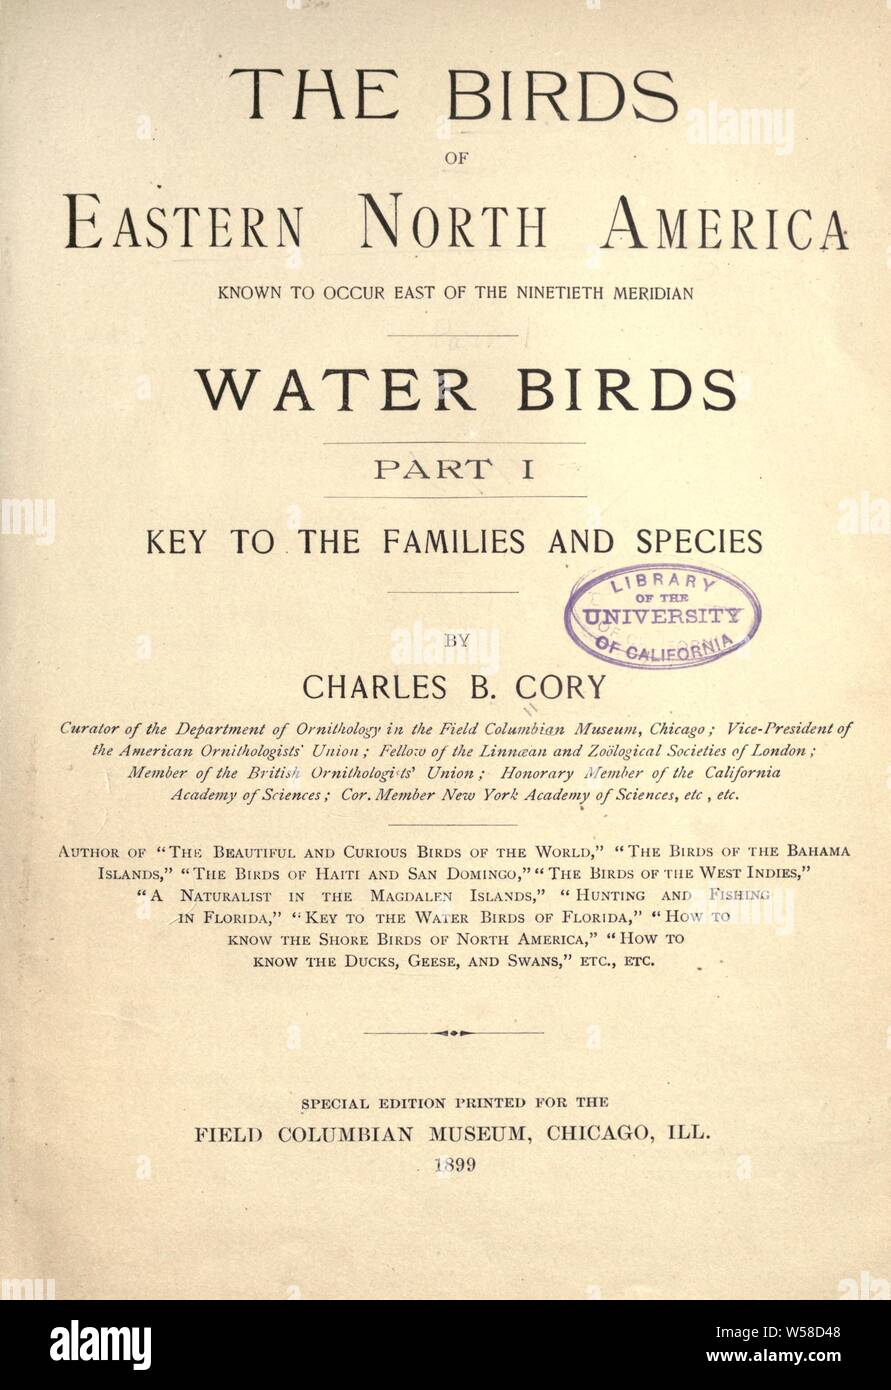 The birds of eastern North America known to occur east of the nineteenth meridian .. : Cory, Charles B. (Charles Barney), 1857-1921 Stock Photo